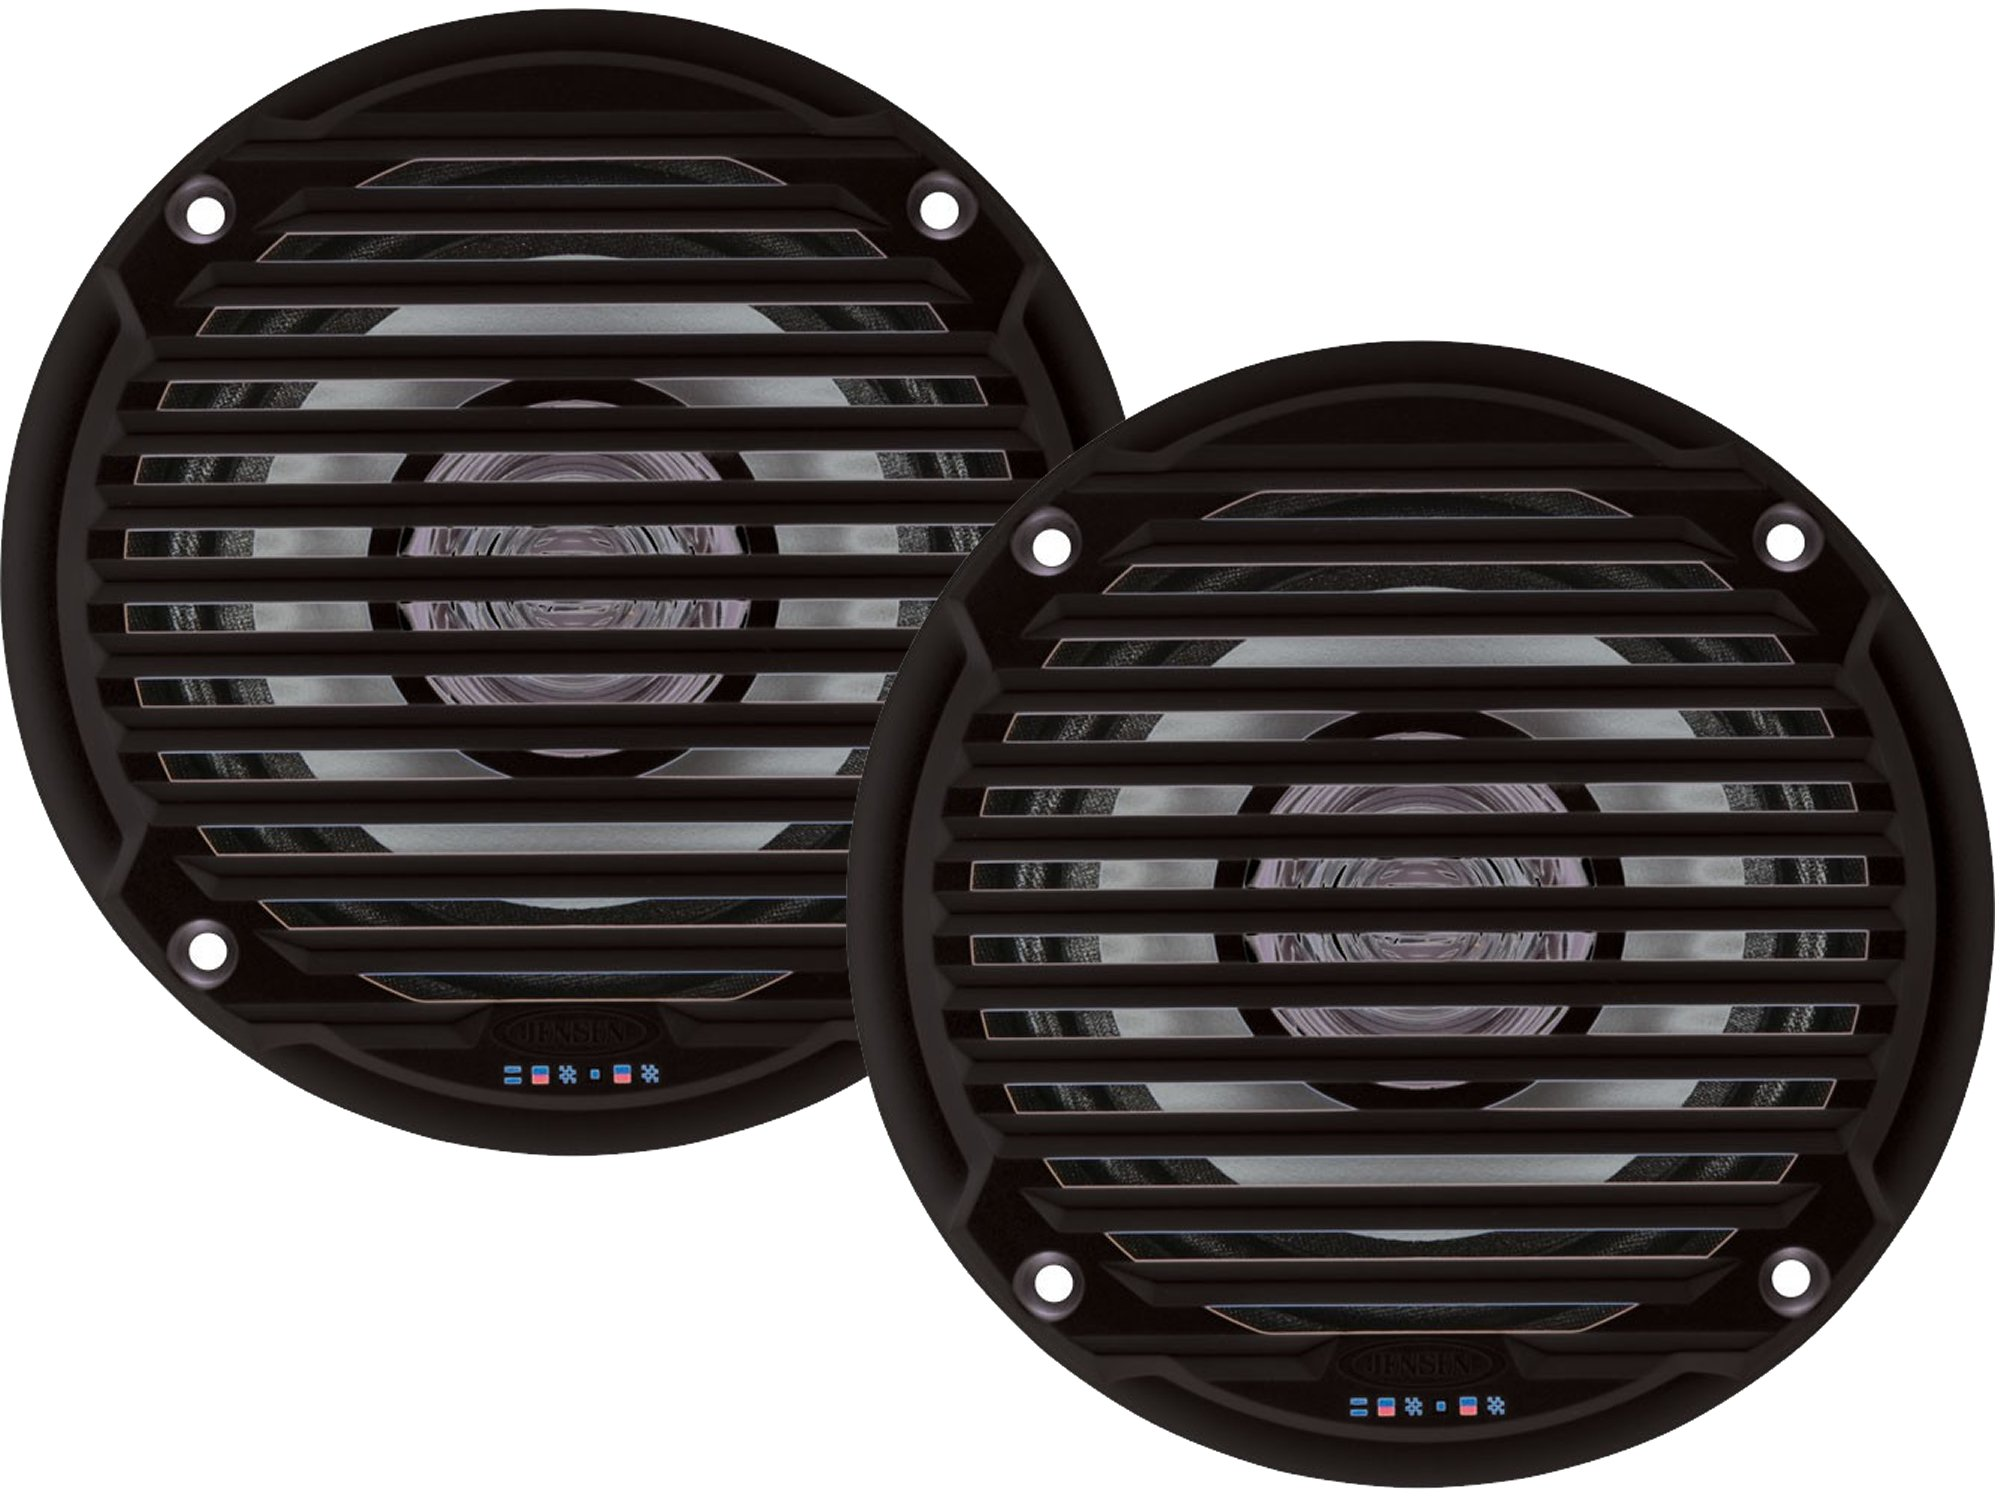 Jensen MS5006BR Pair of MS5006B 5.25'' Black Dual Cone Waterproof Speaker, 30 Watts Max Power Handling, Sensitivity @ 1W/1 Meter 88dB, Frequency Response 65Hz-20kHz, Nominal Impedance 4 Ohms, 5-15/16'' Grille Diameter, 4-3/8'' Mounting Hole Diameter, 1-1/2''